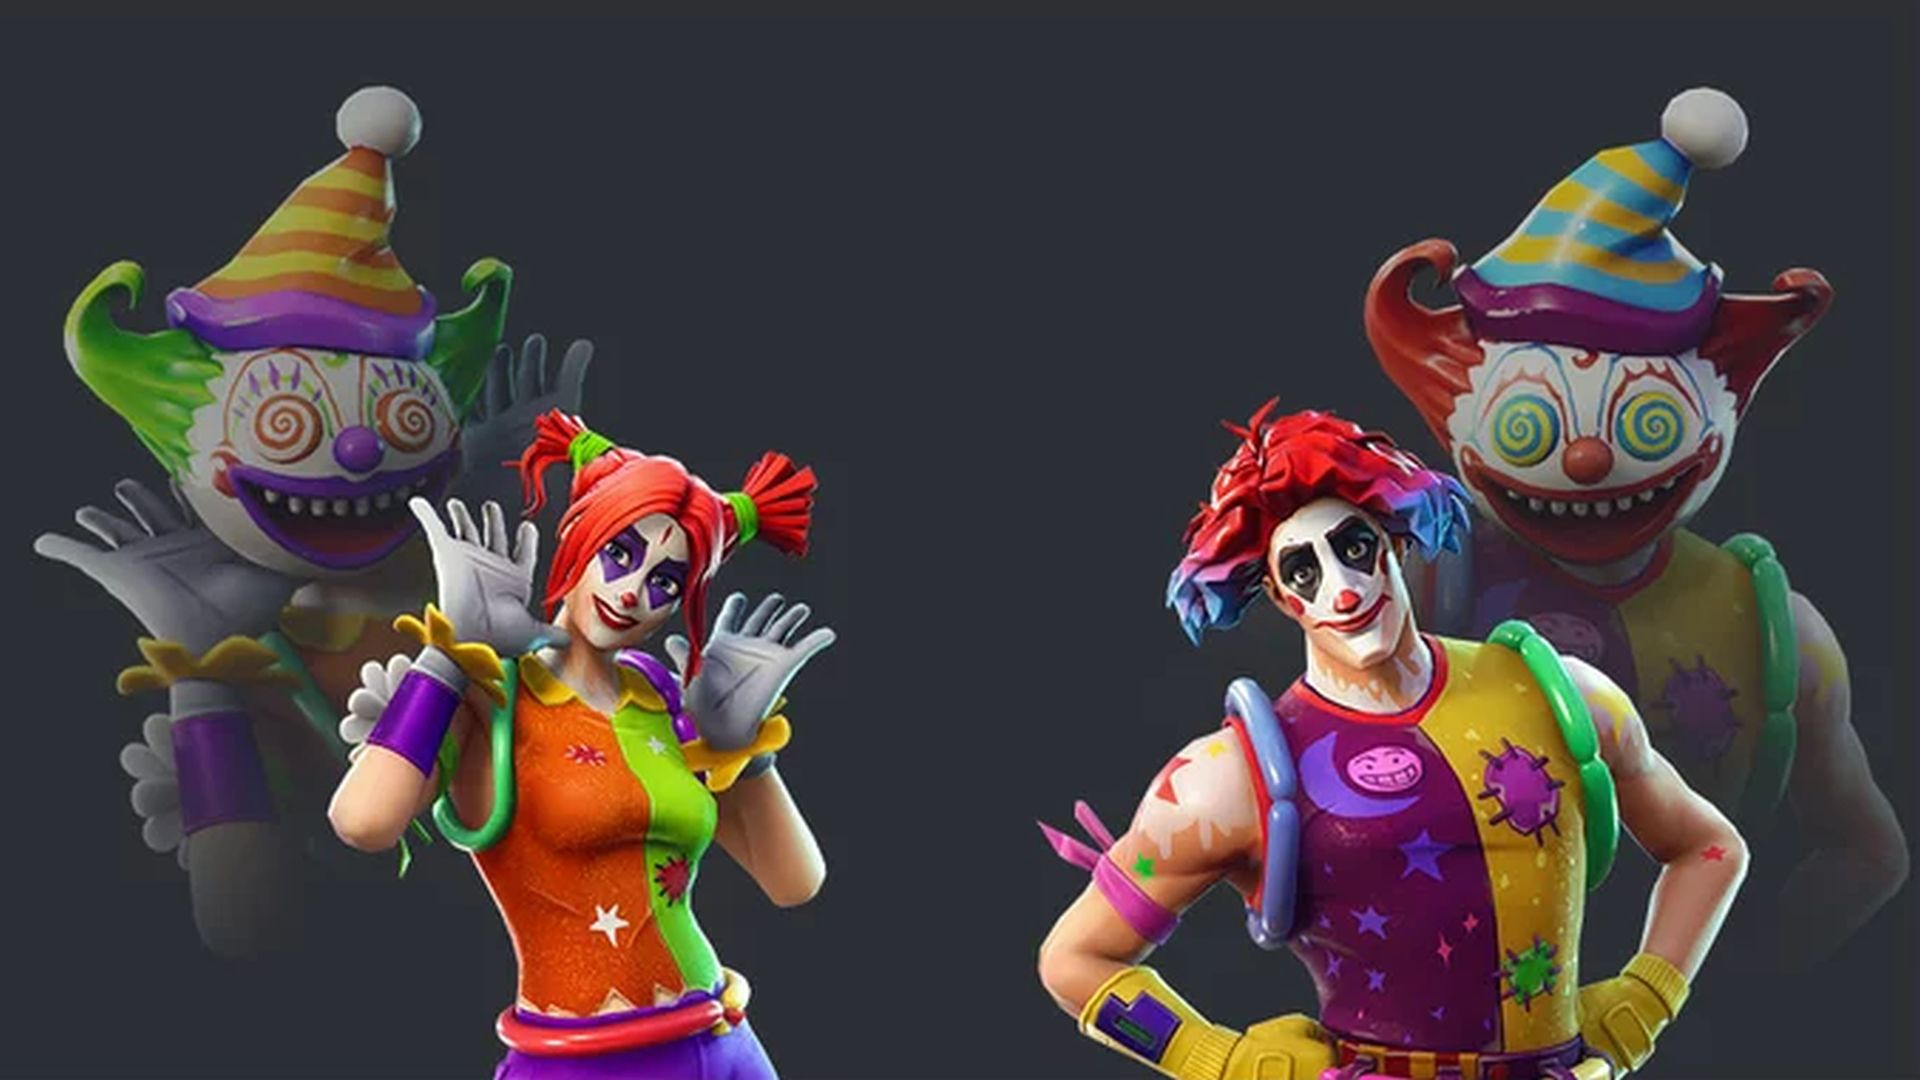 New Fortnite skins leaked – hideous clowns are coming to the